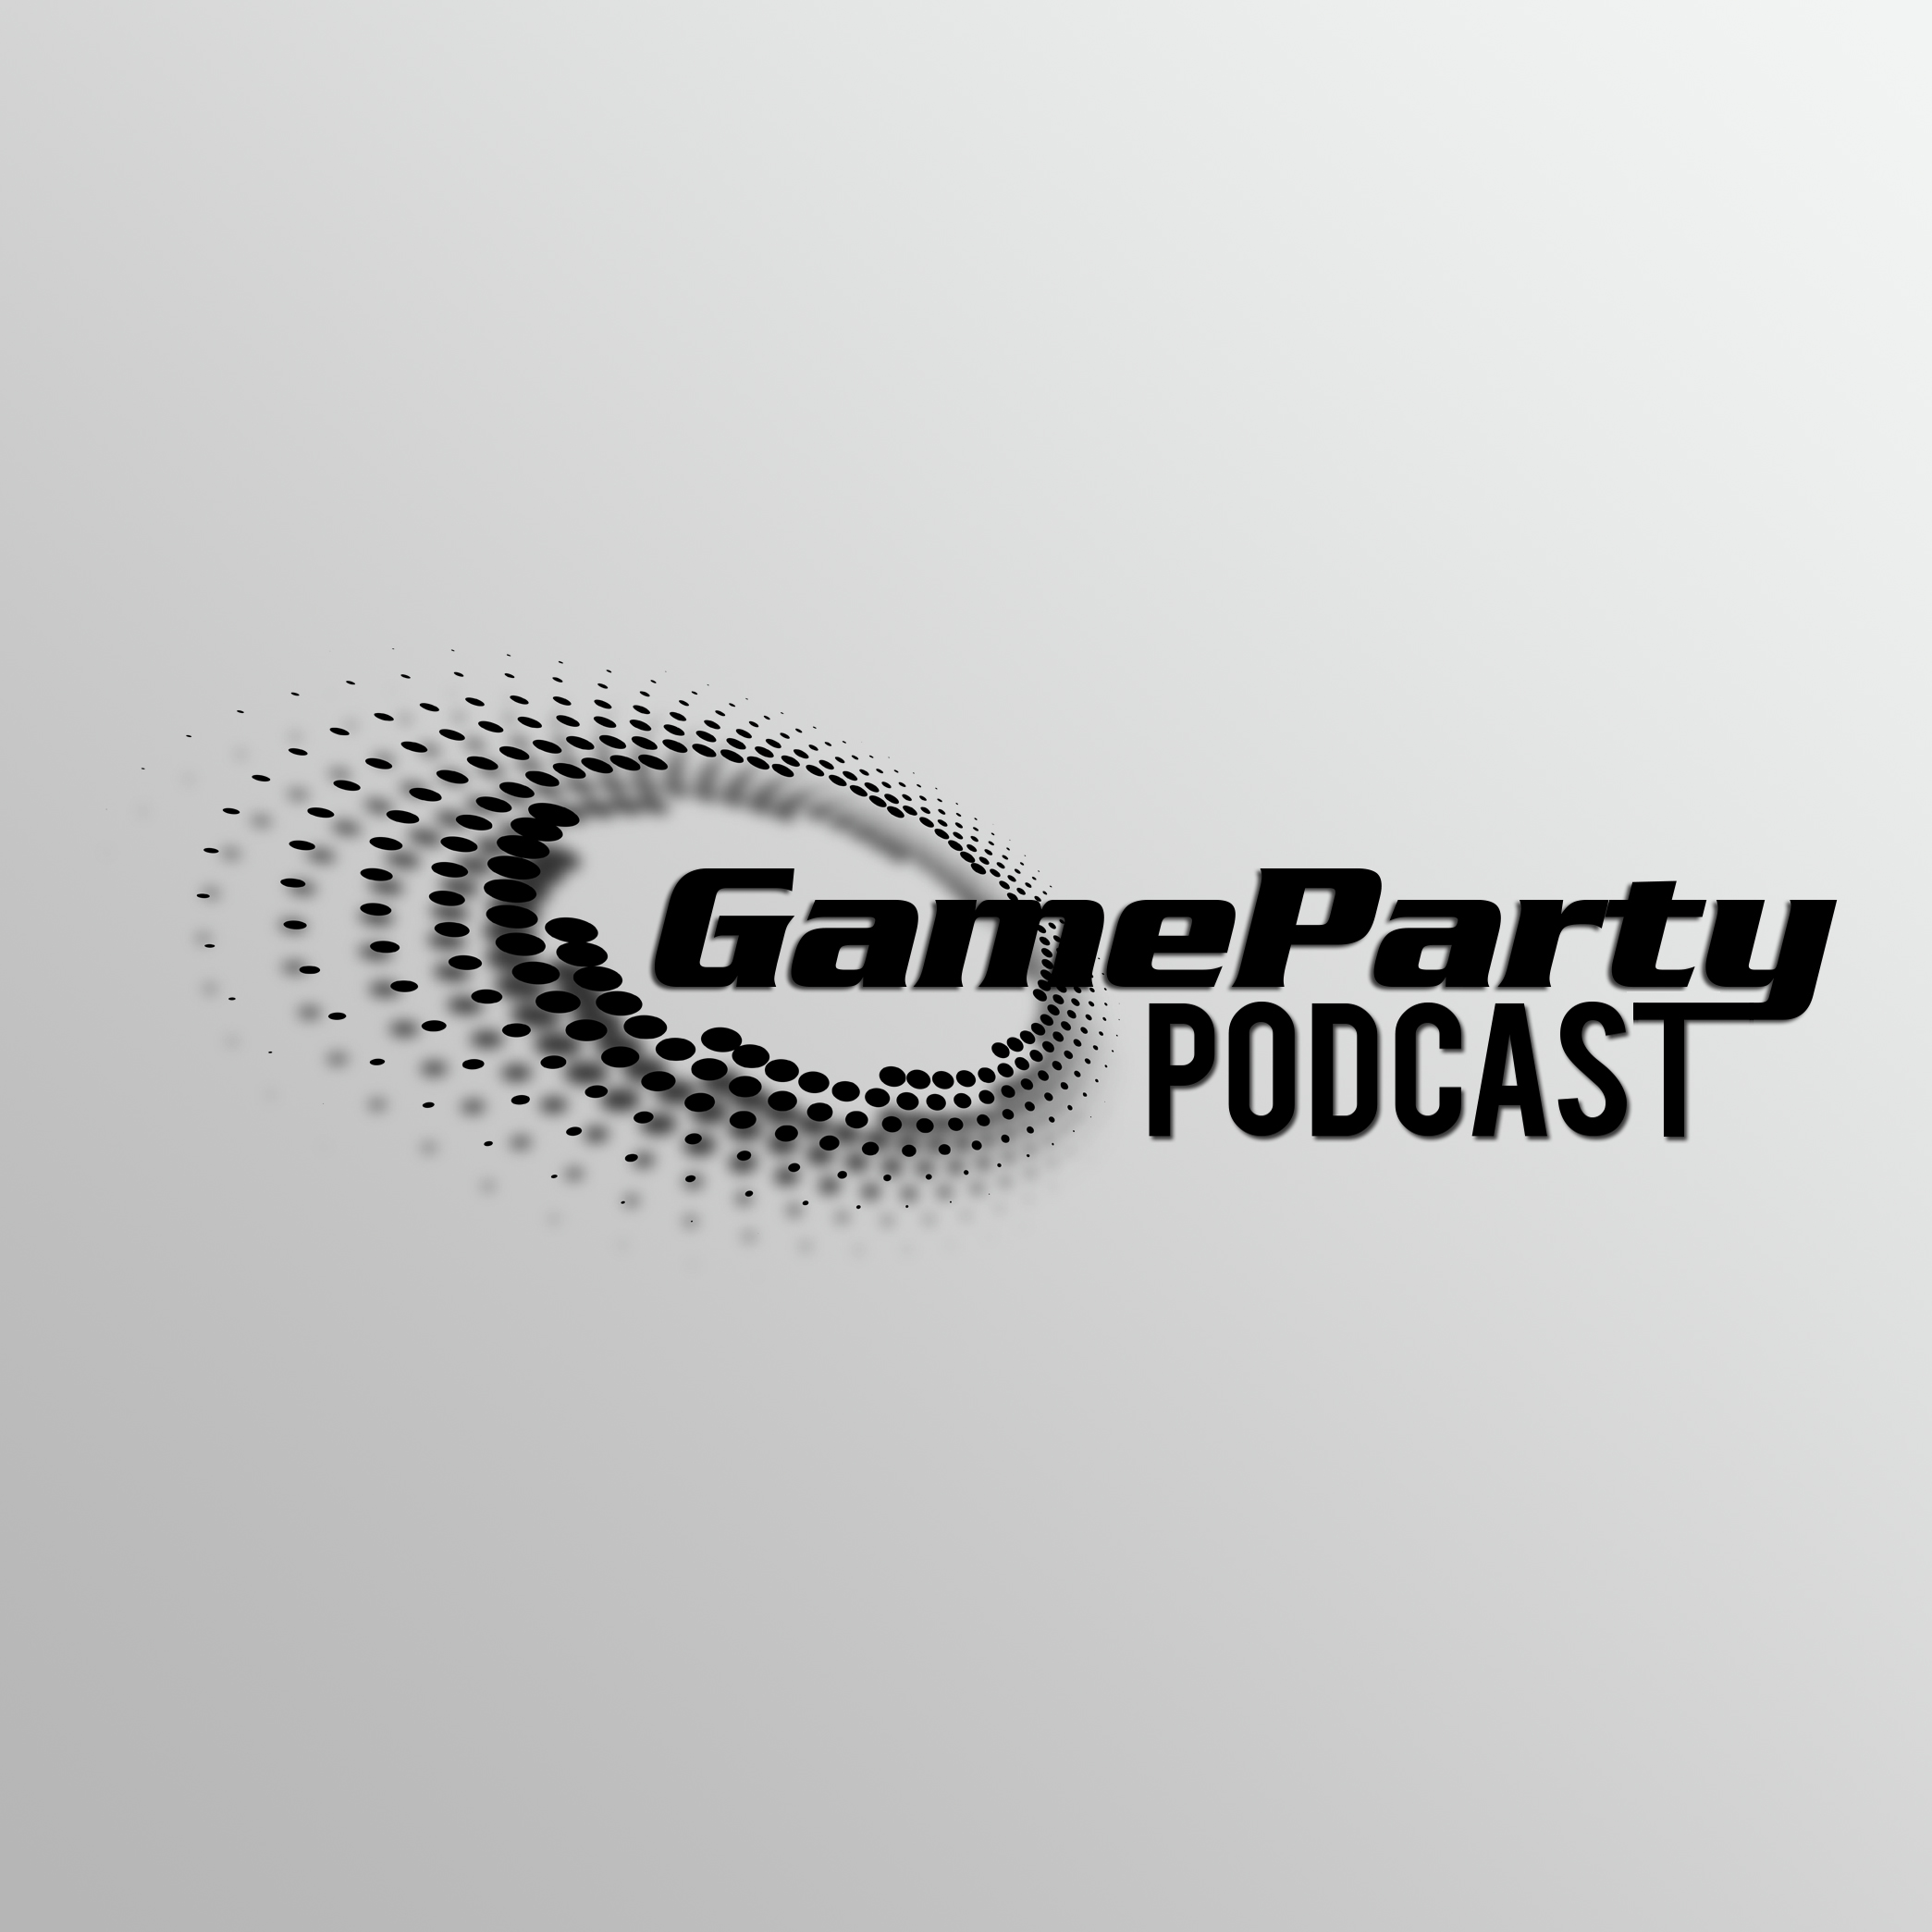 GameParty Podcast